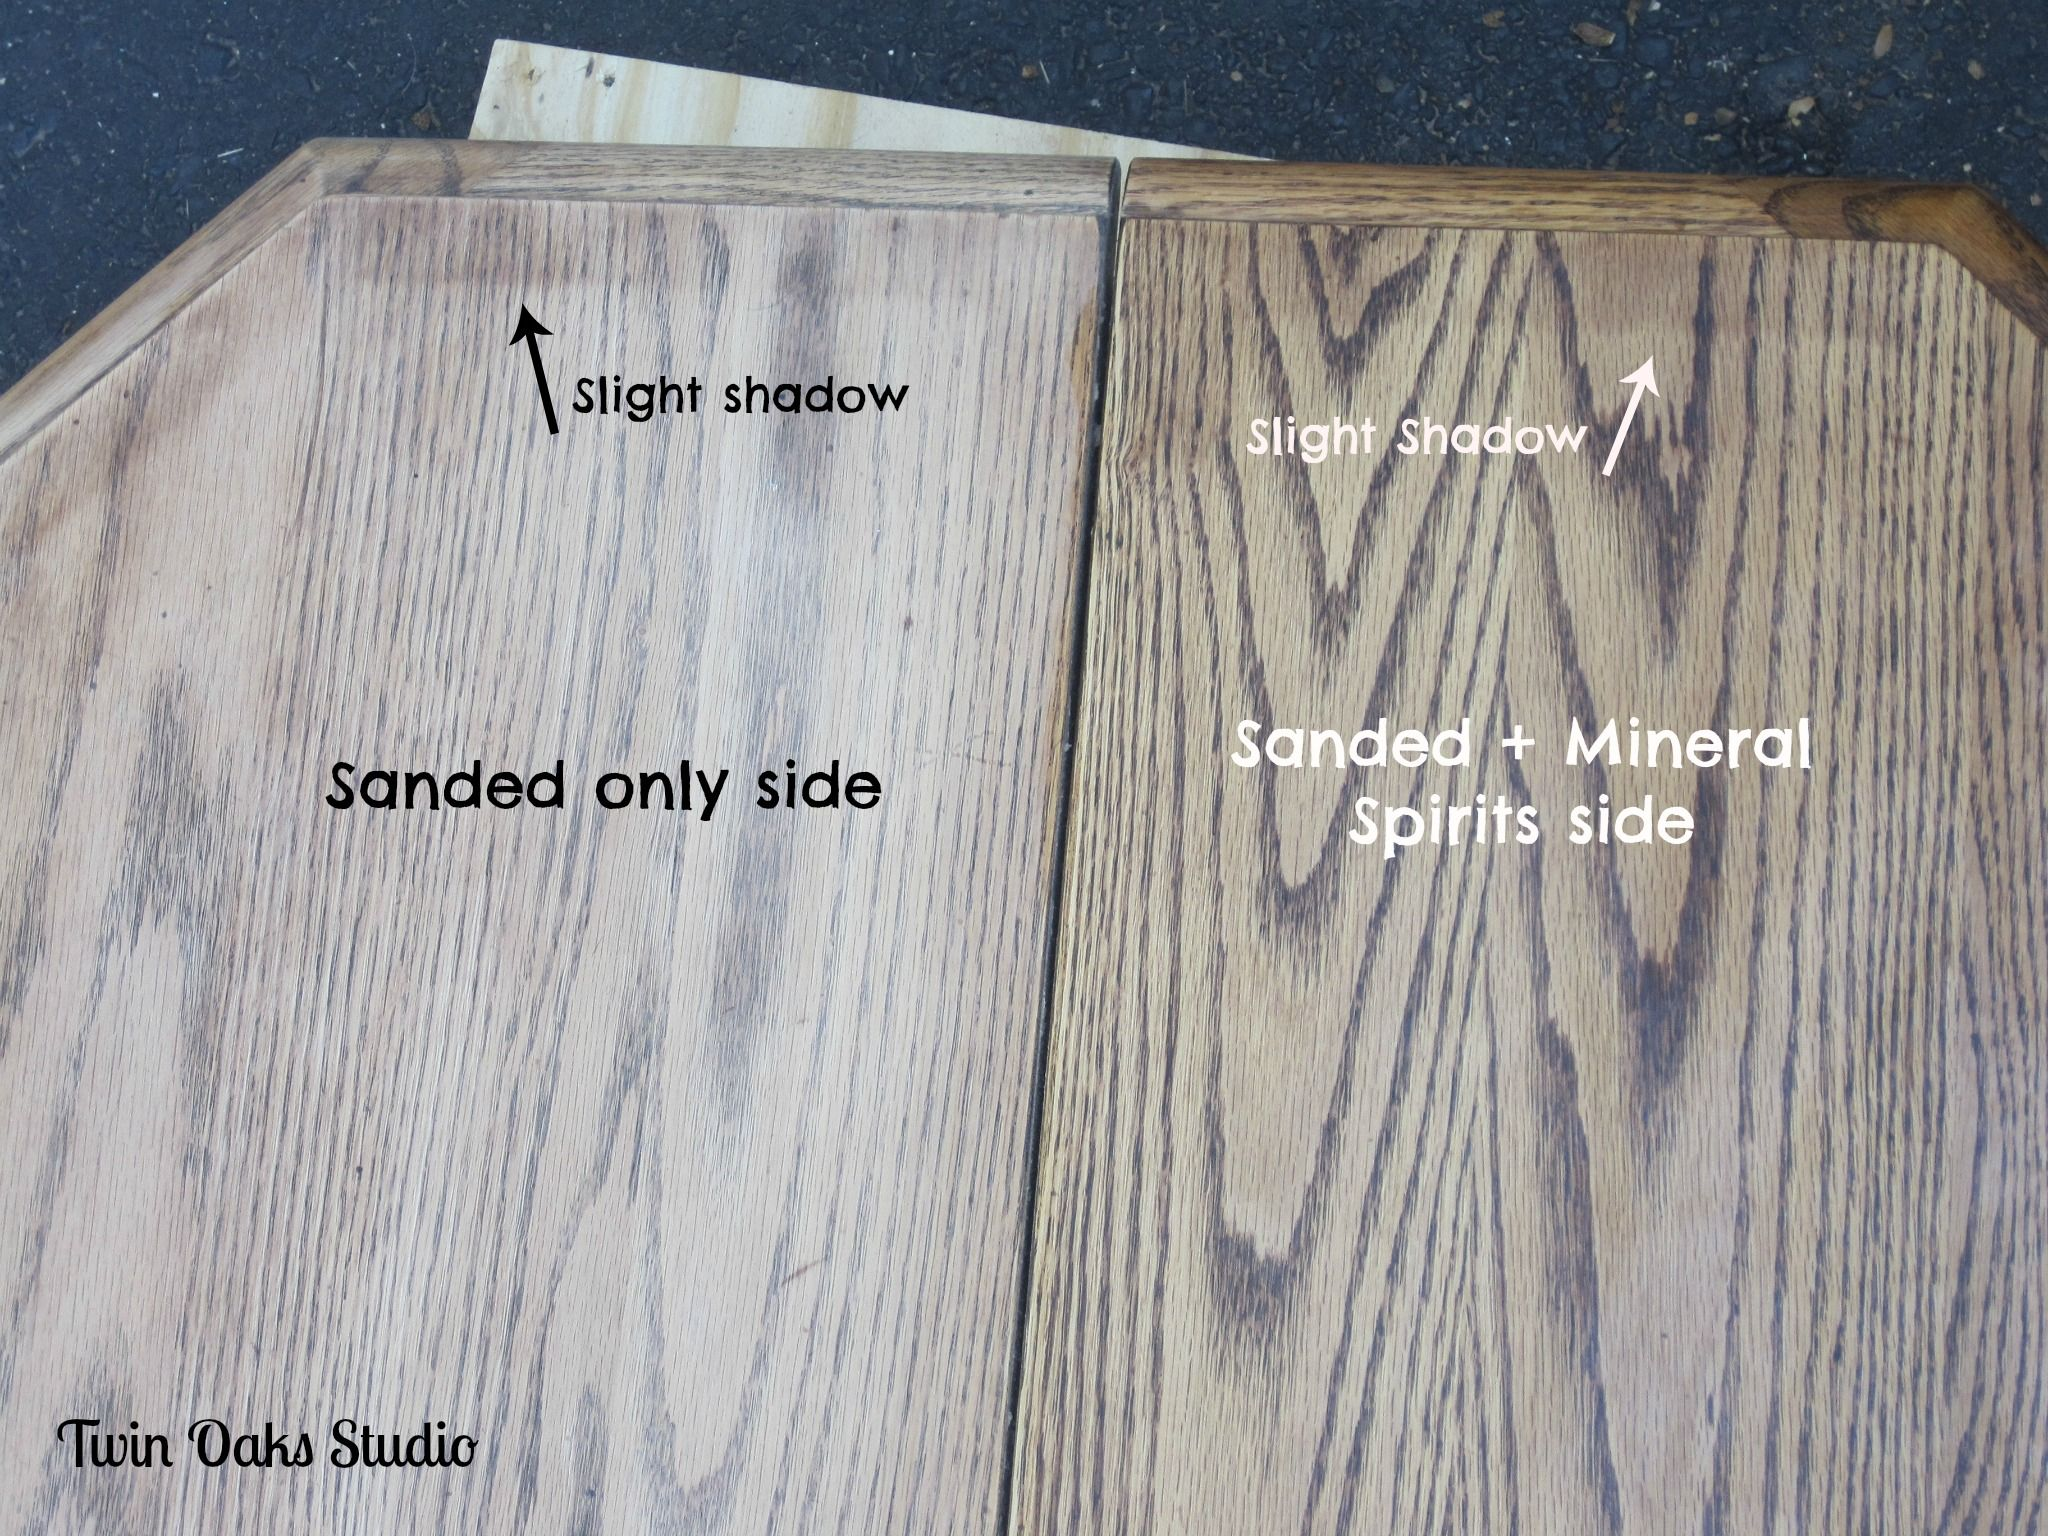 Wipe Mineral Spirits On Freshly Sanded Wood To Mimick Stain It Shows Flaws Where You Might Need Sand More